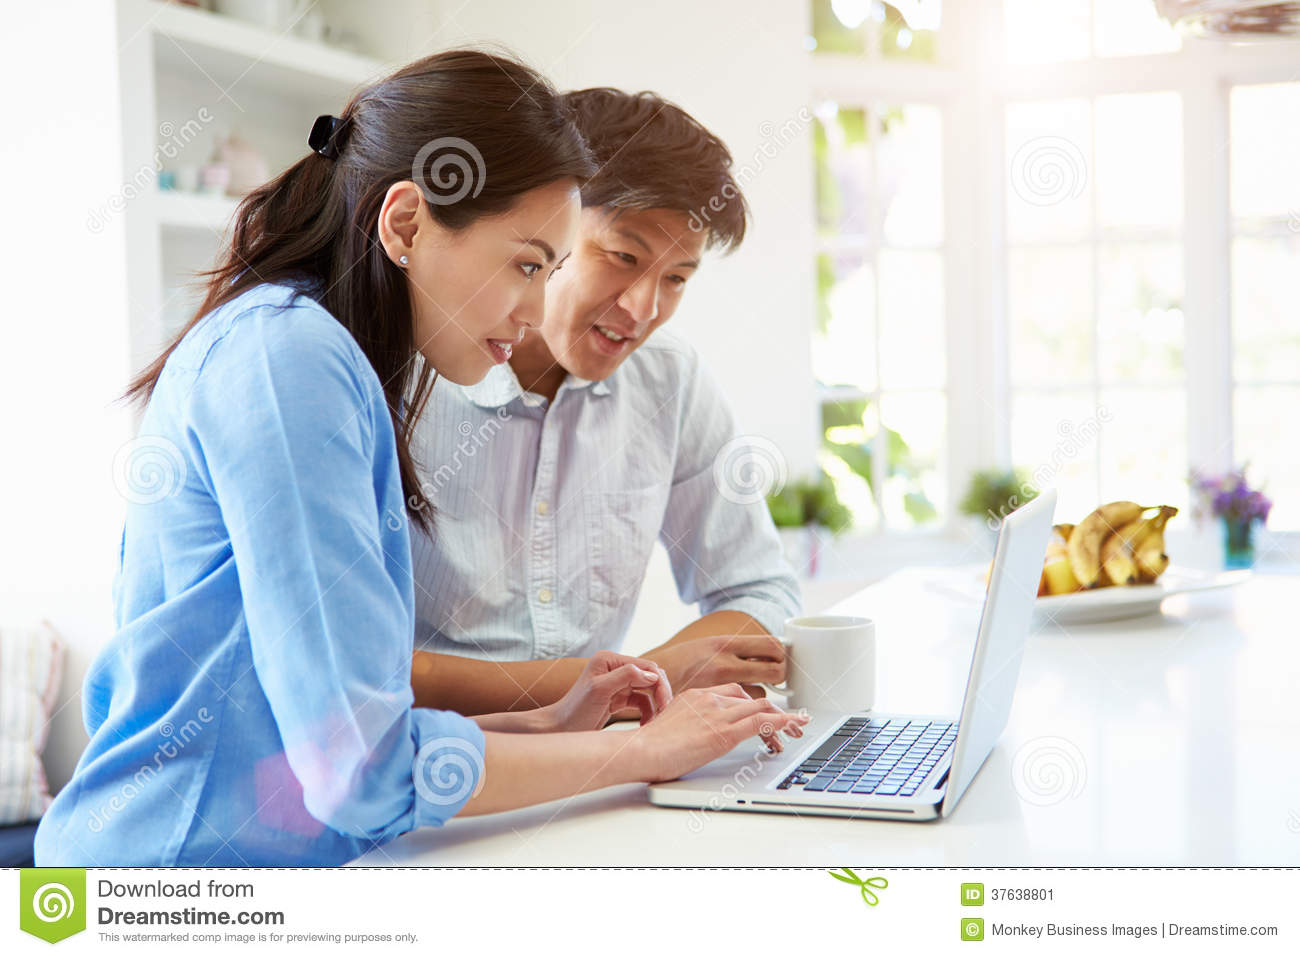 Asian Couple Looking At Laptop In Kitchen Stock Image - Image of ...